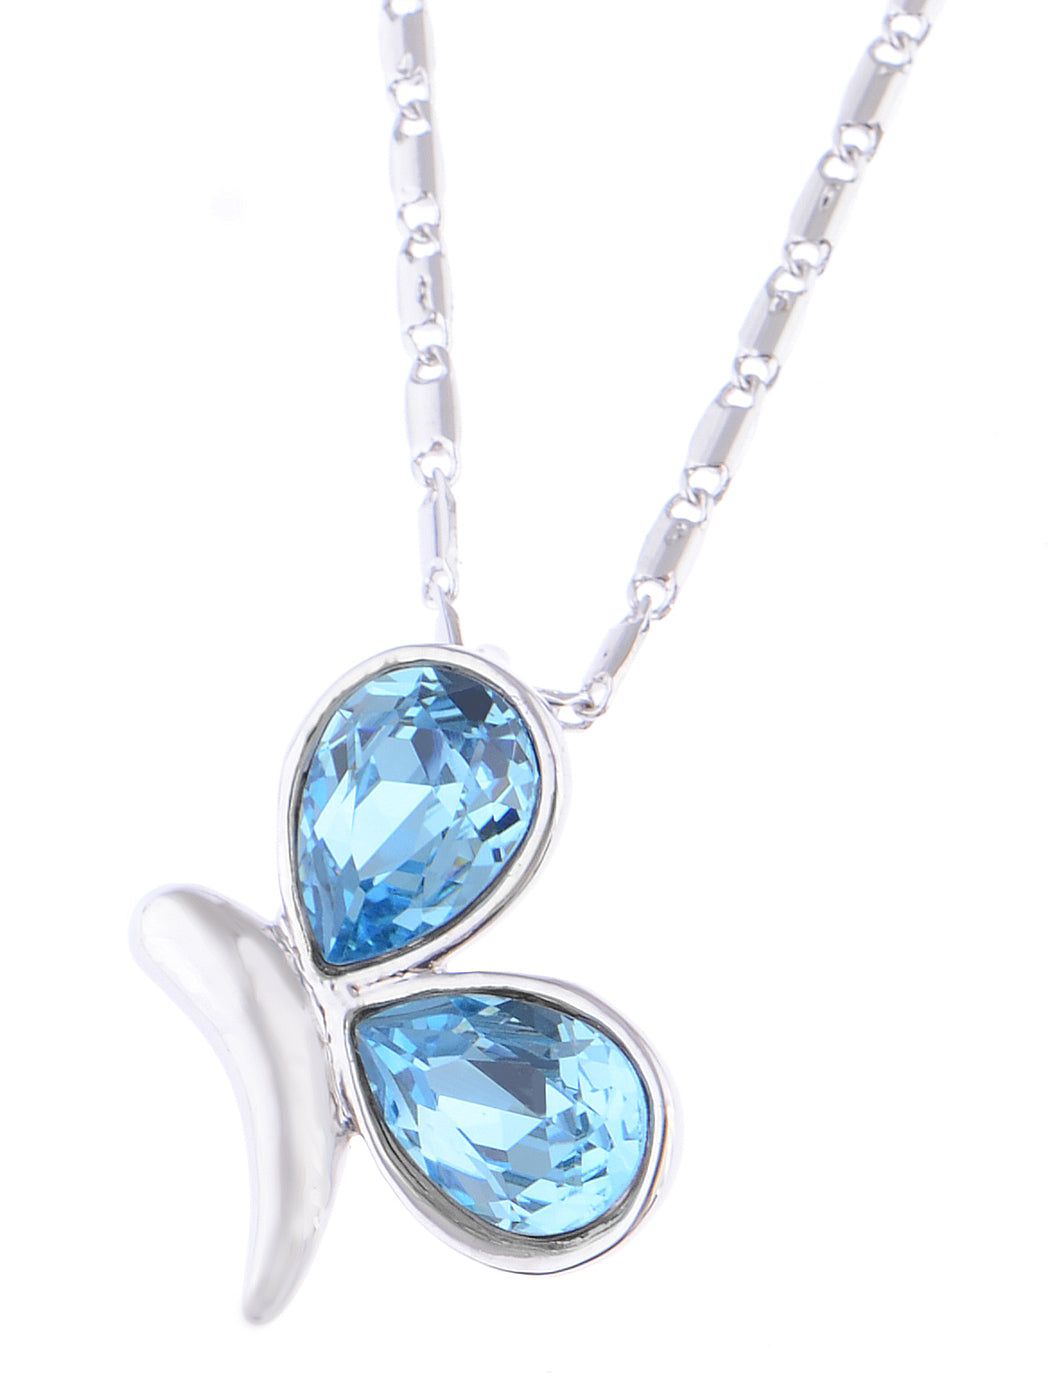 Swarovski Crystal Blue Elements Butterfly Anniversary Gift Pendant Necklace